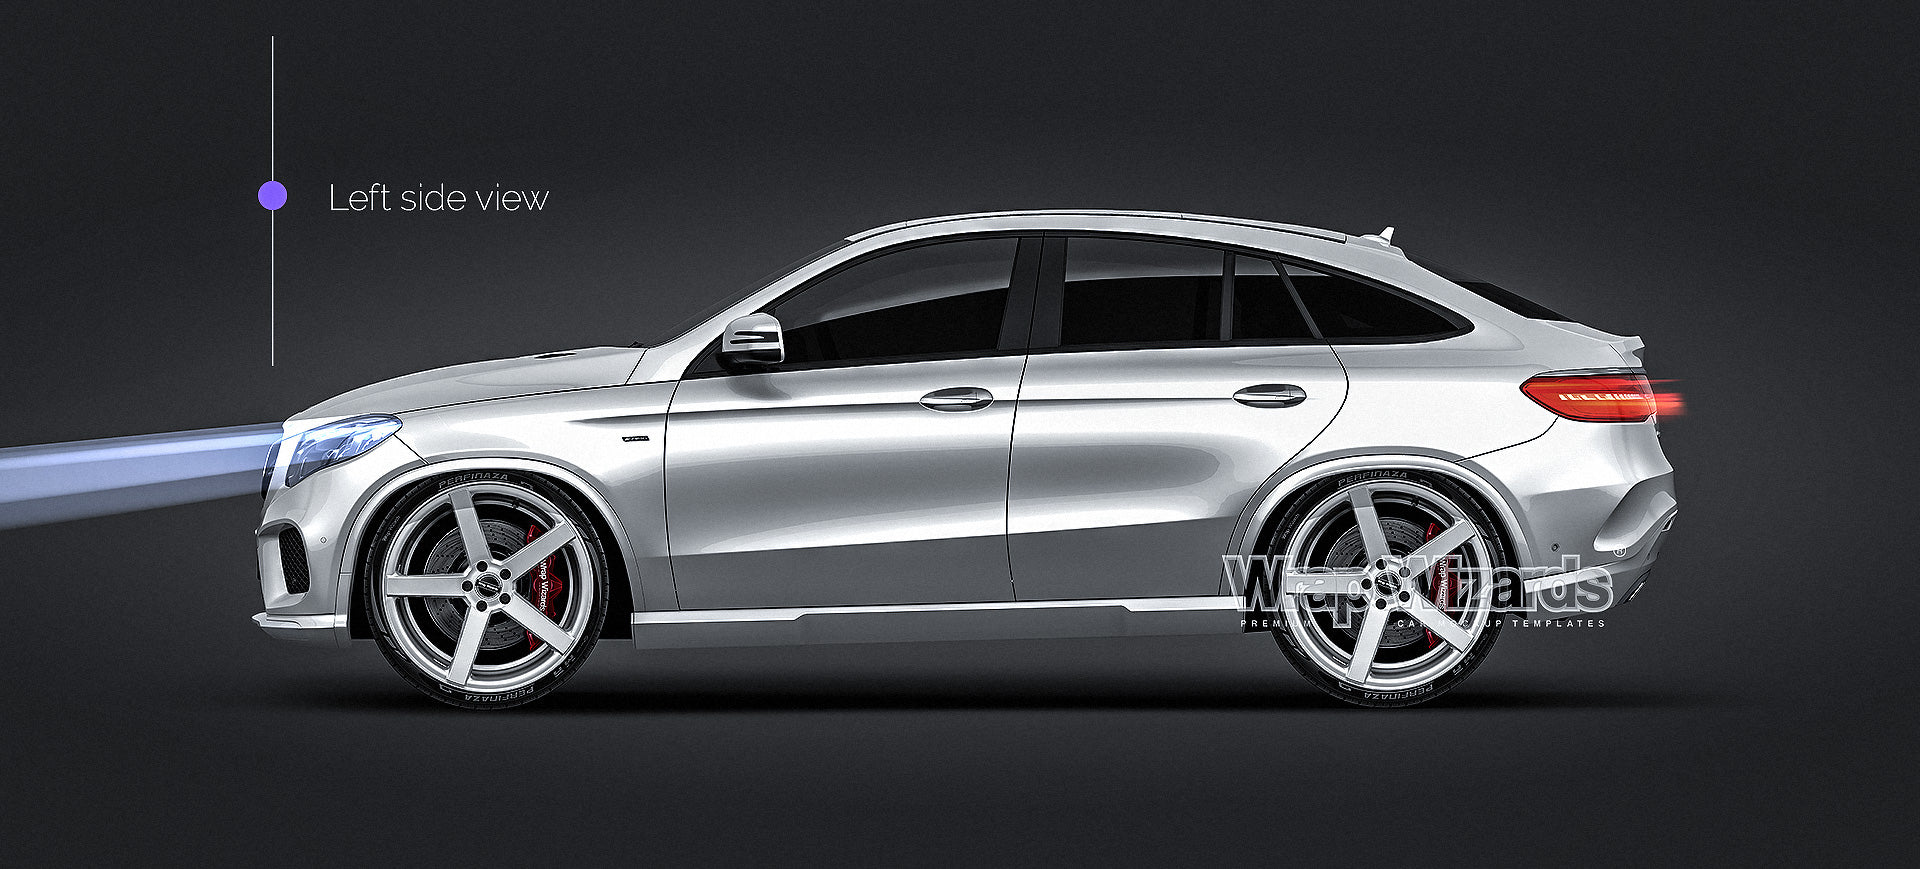 Mercedes-Benz  GLE AMG Coupe 2018 - all sides Car Mockup Template.psd